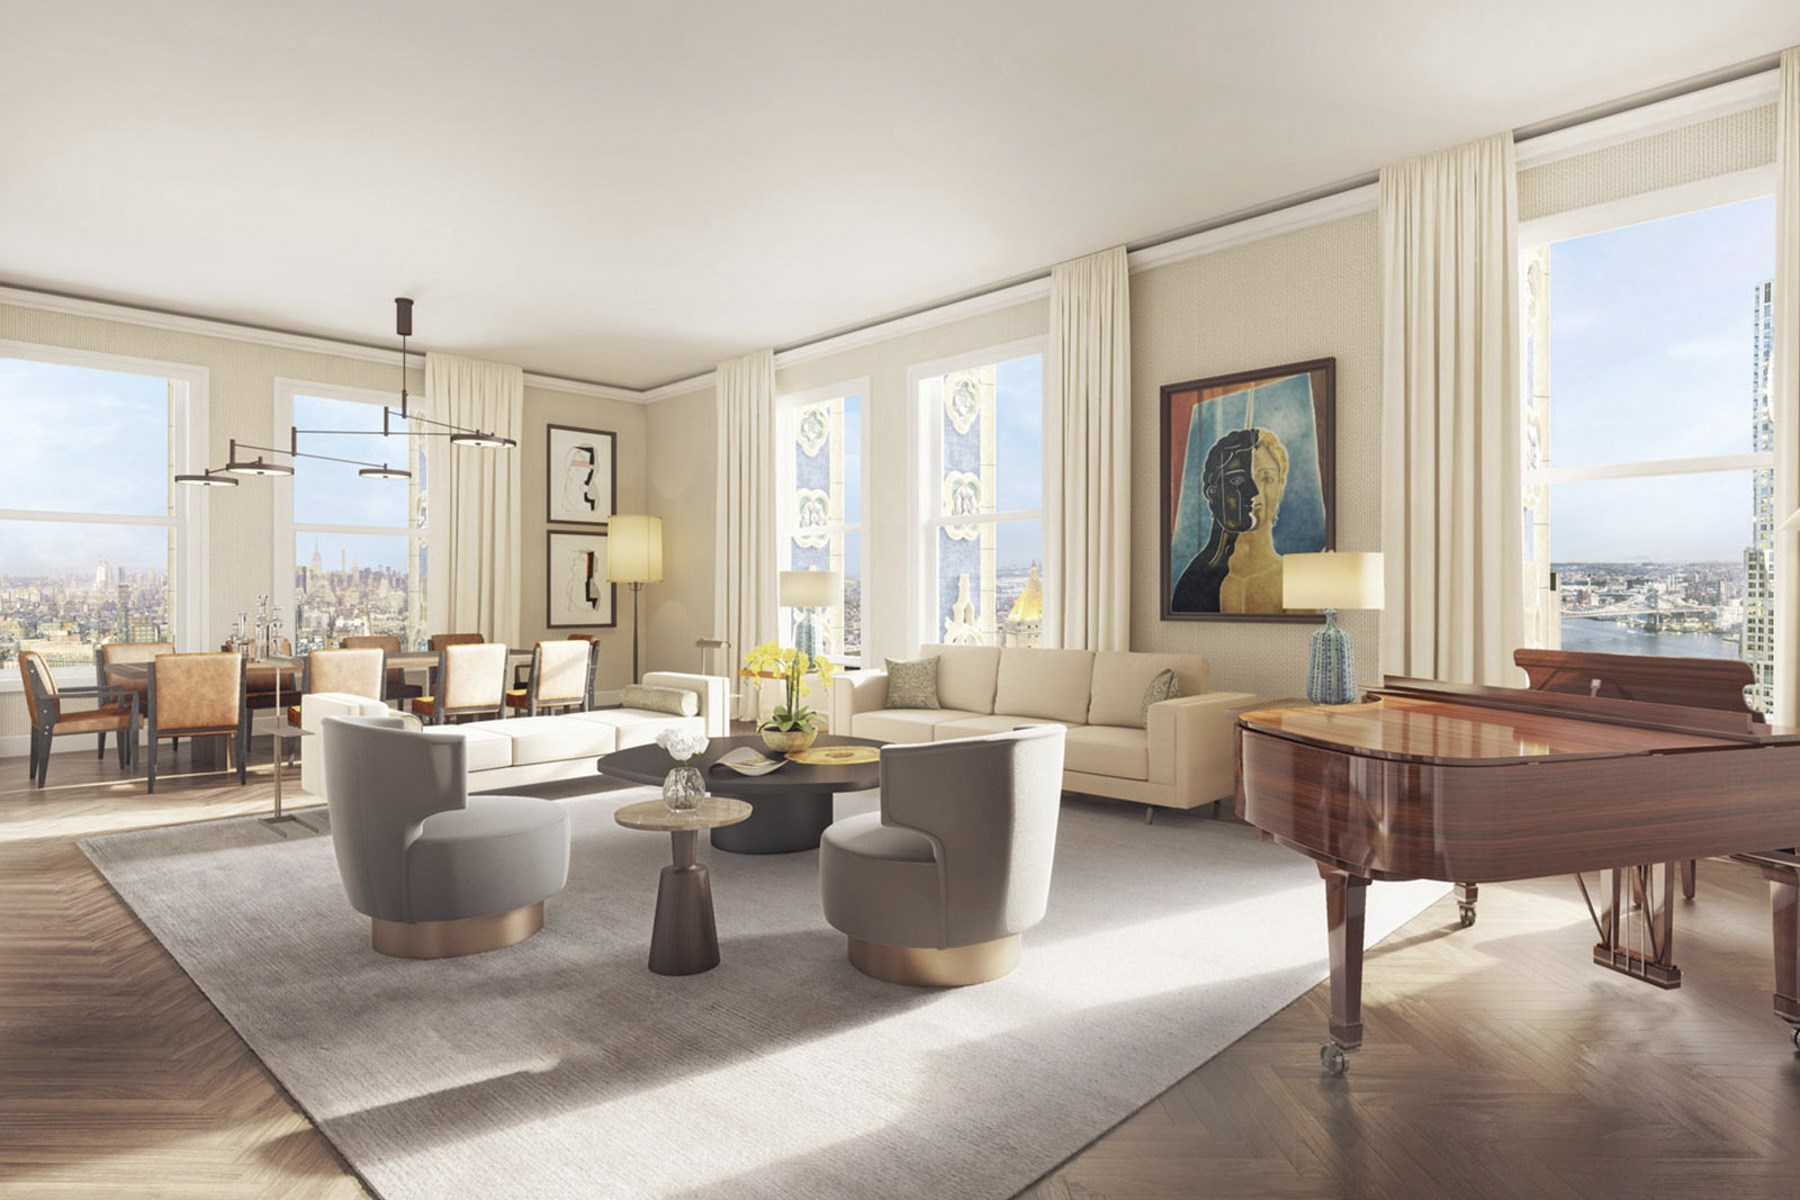 Condominium for Sale at The Woolworth Tower Residences - 43A 2 Park Place Apt 43A Tribeca, New York, New York, 10007 United States